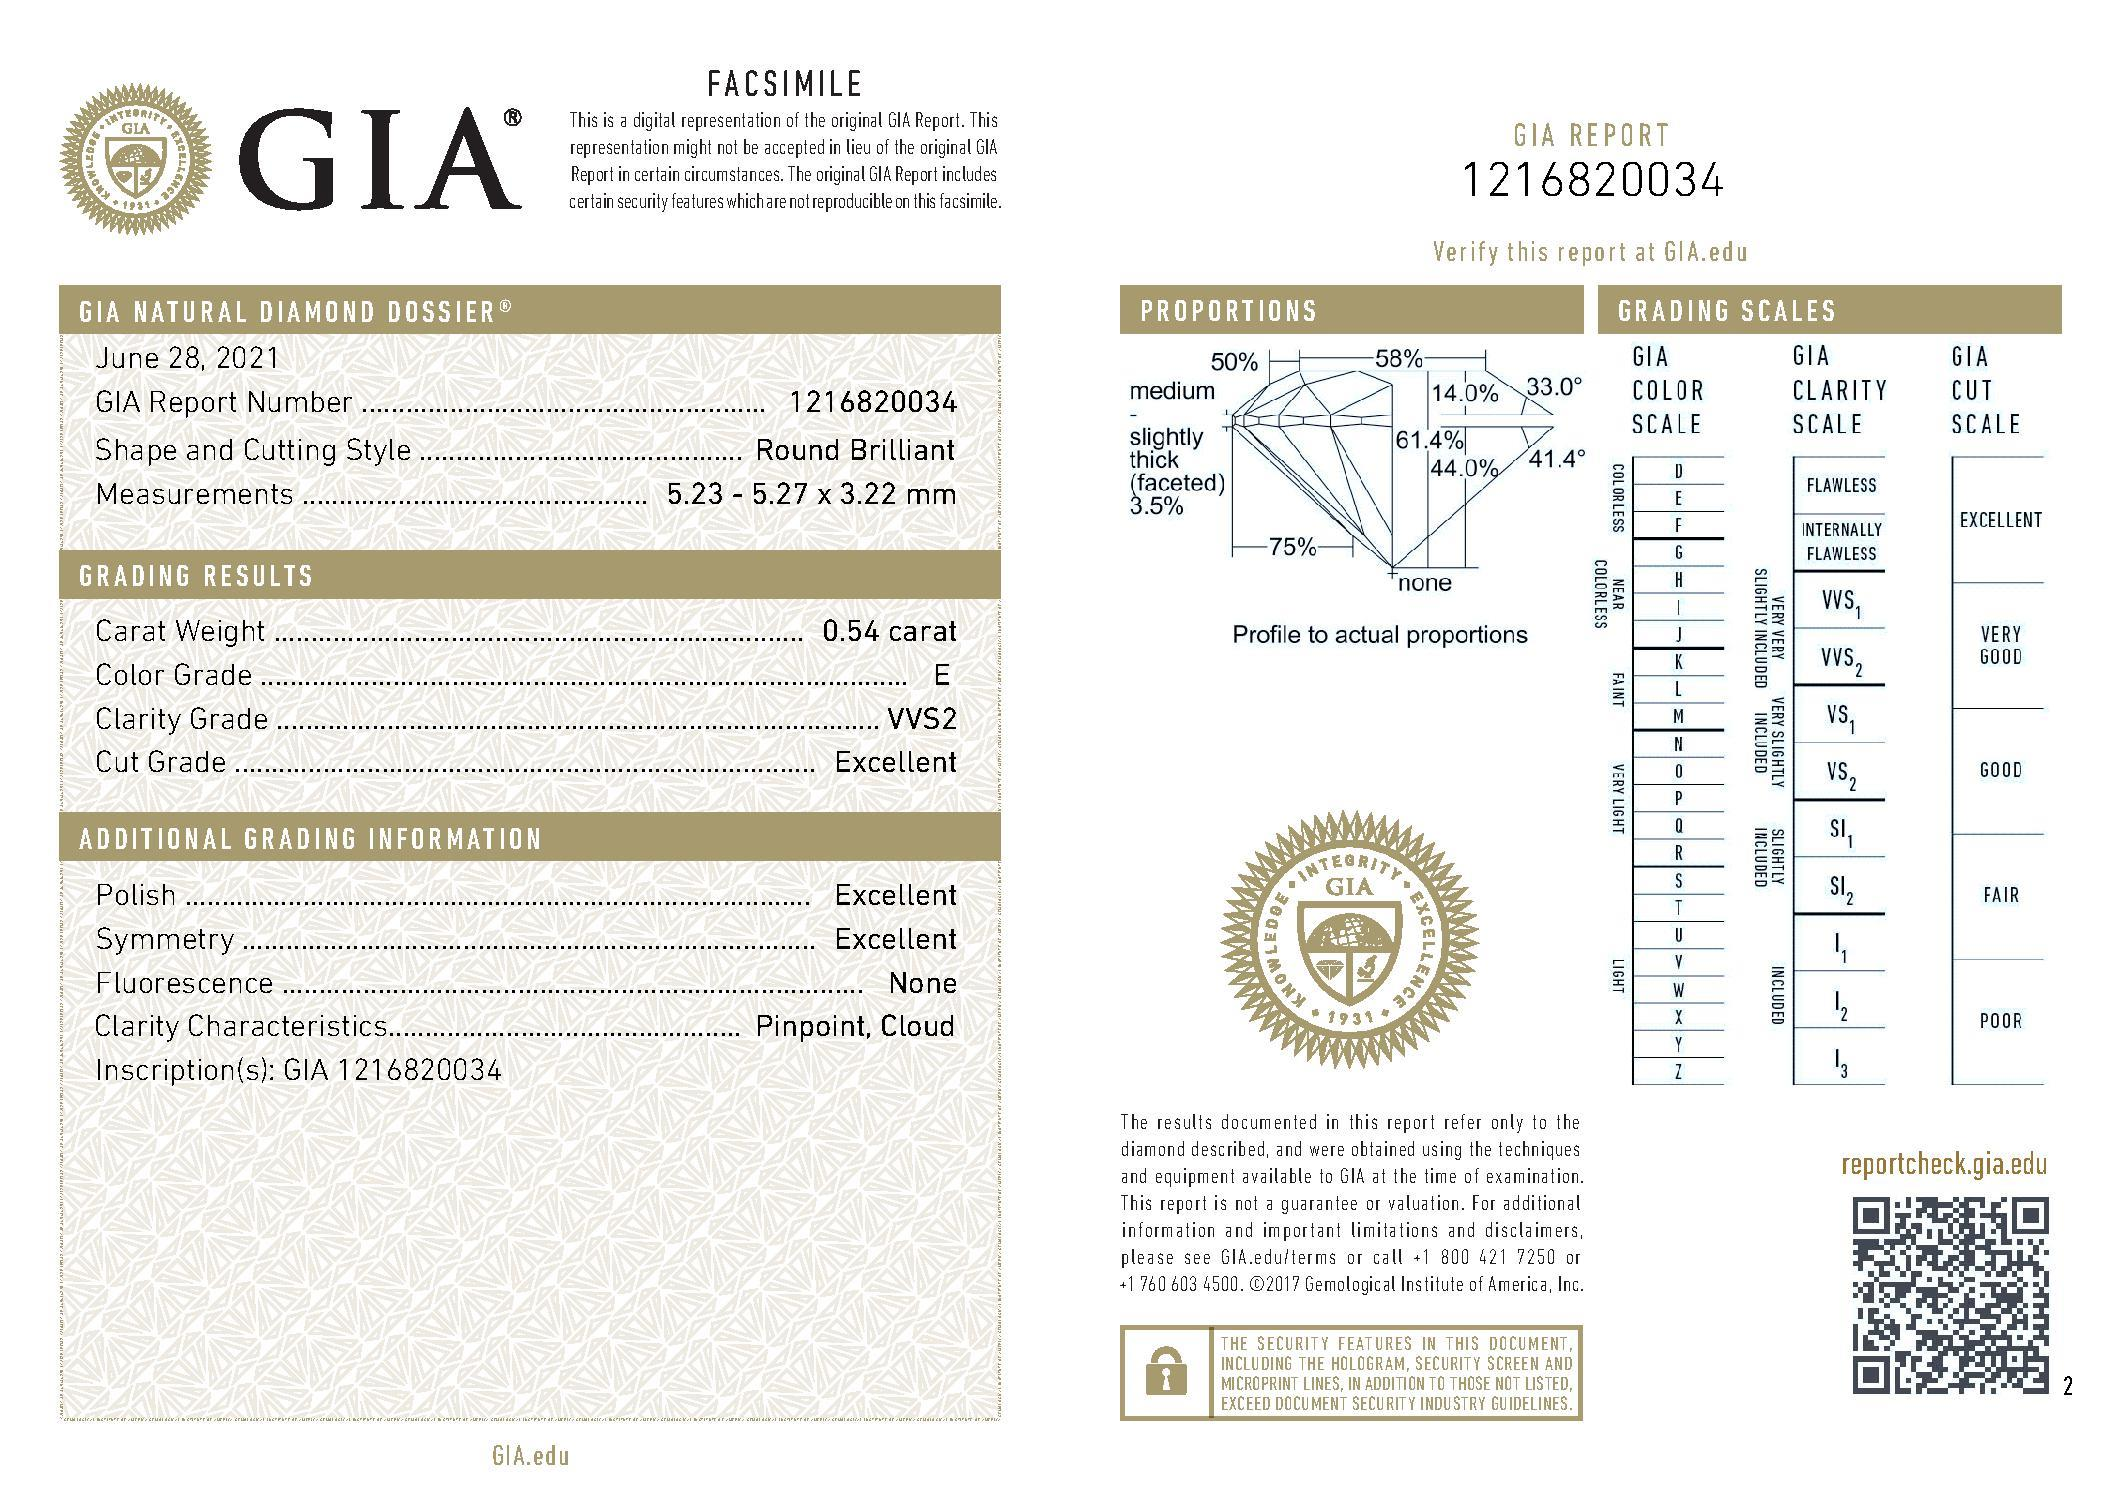 This is a 0.54 carat round shape, E color, VVS2 clarity natural diamond accompanied by a GIA grading report.